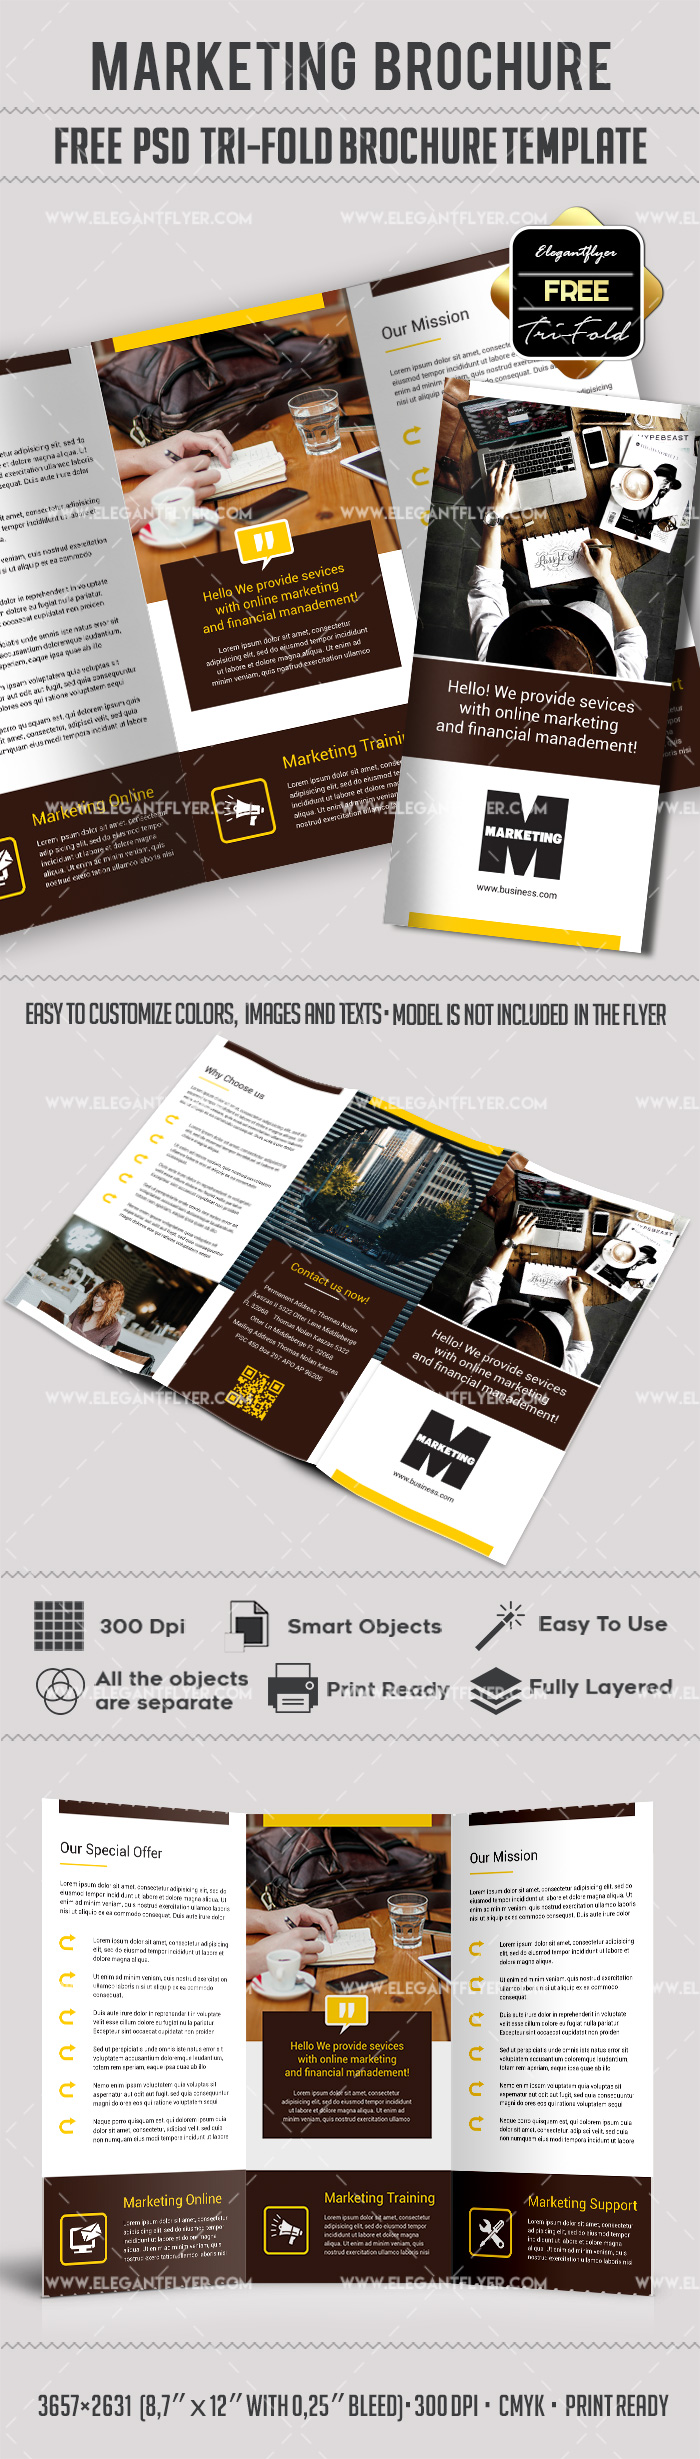 Marketing free tri fold psd brochure template by for Free tri fold brochure template download